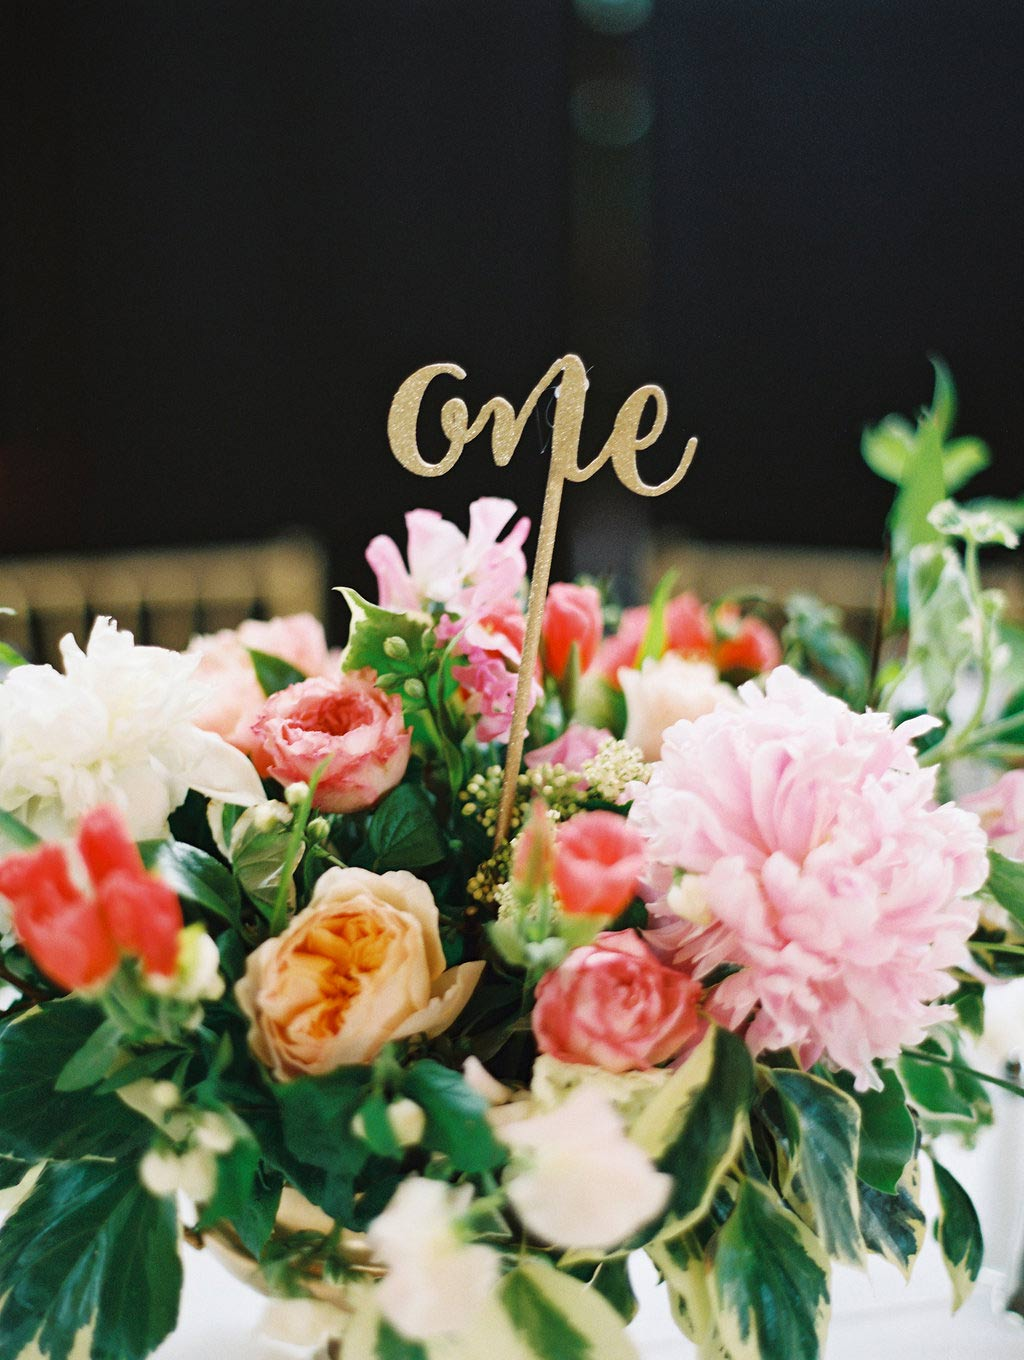 Low floral wedding centerpiece with gold script table number dowel